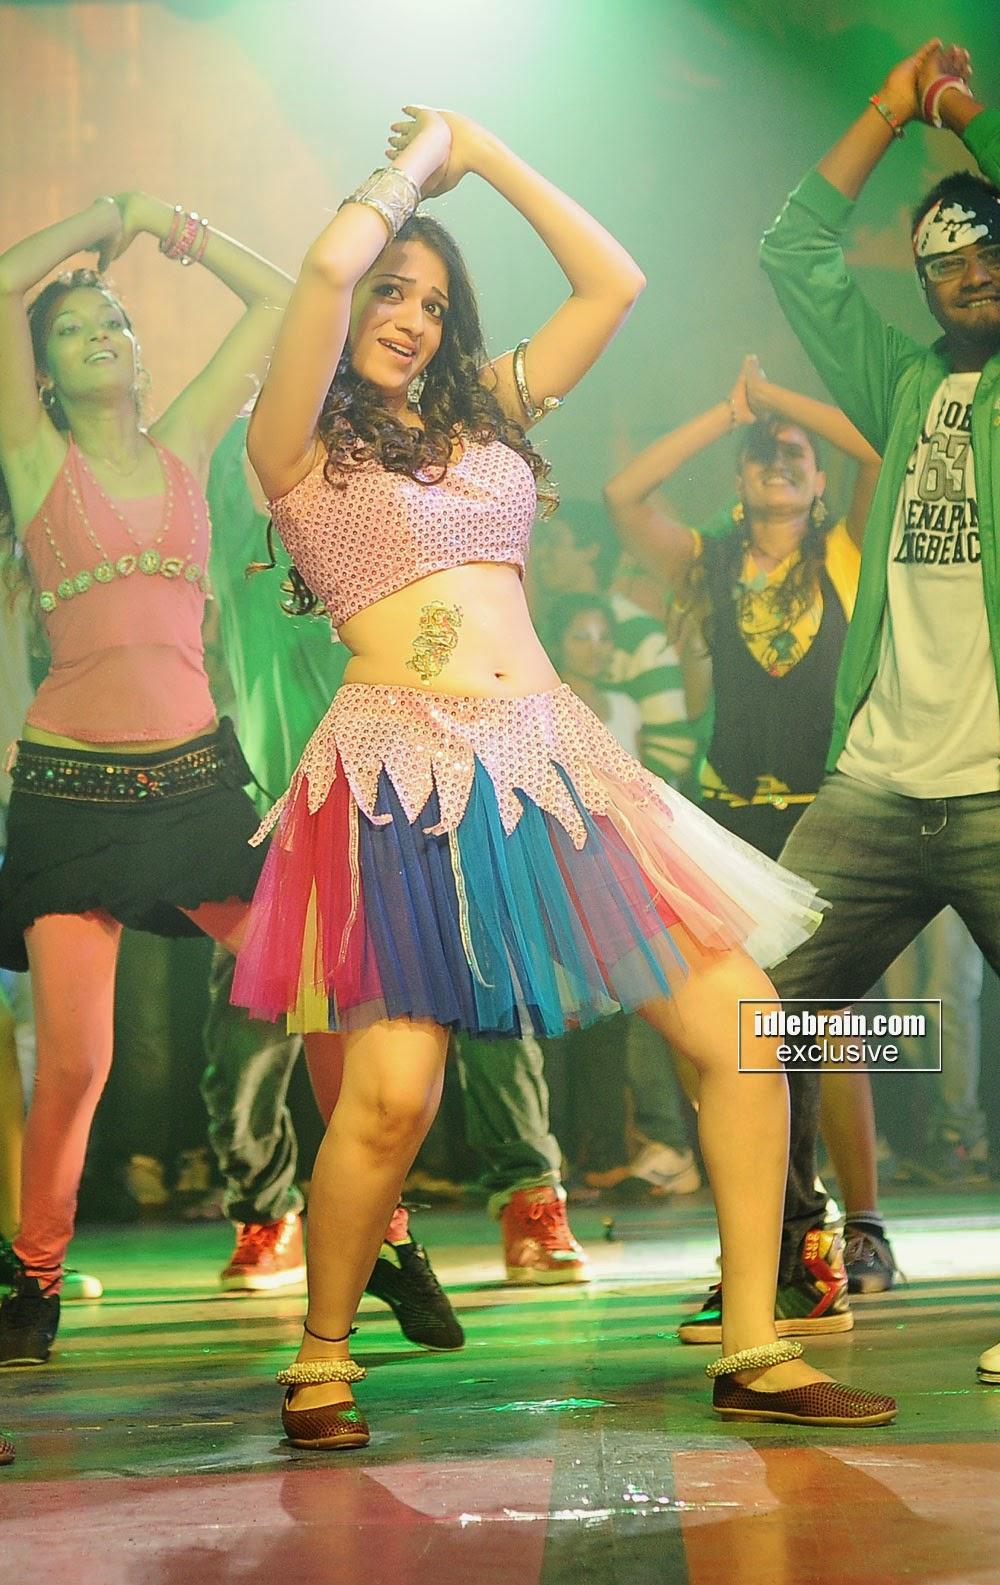 reshma item song